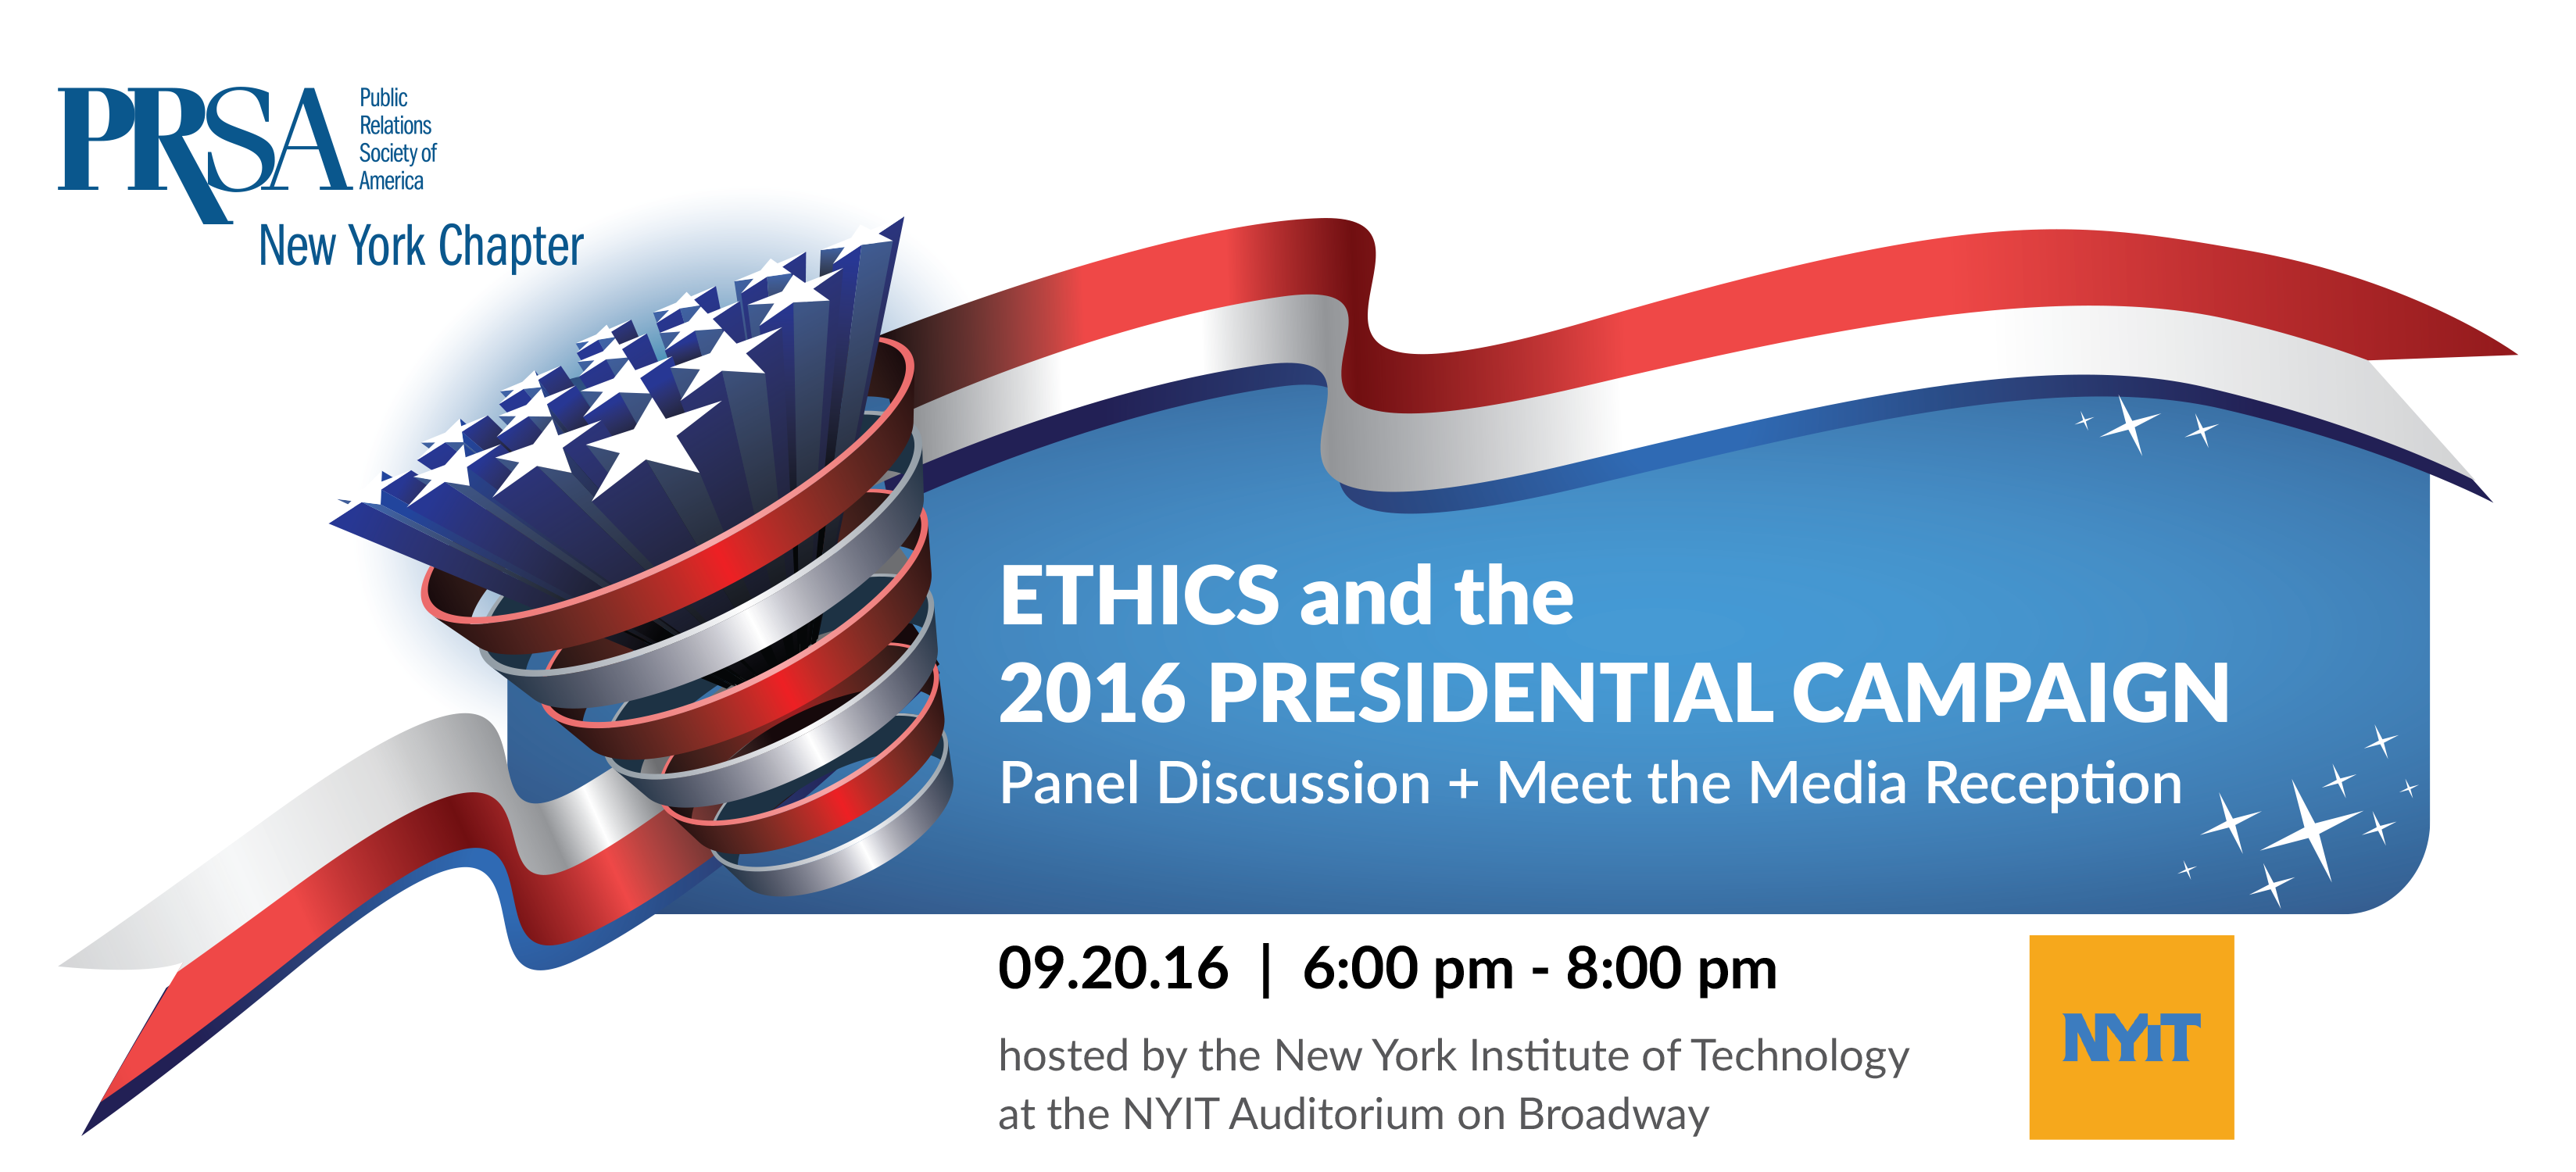 LOGO: Ethics and the 2016 Presidential Campaign